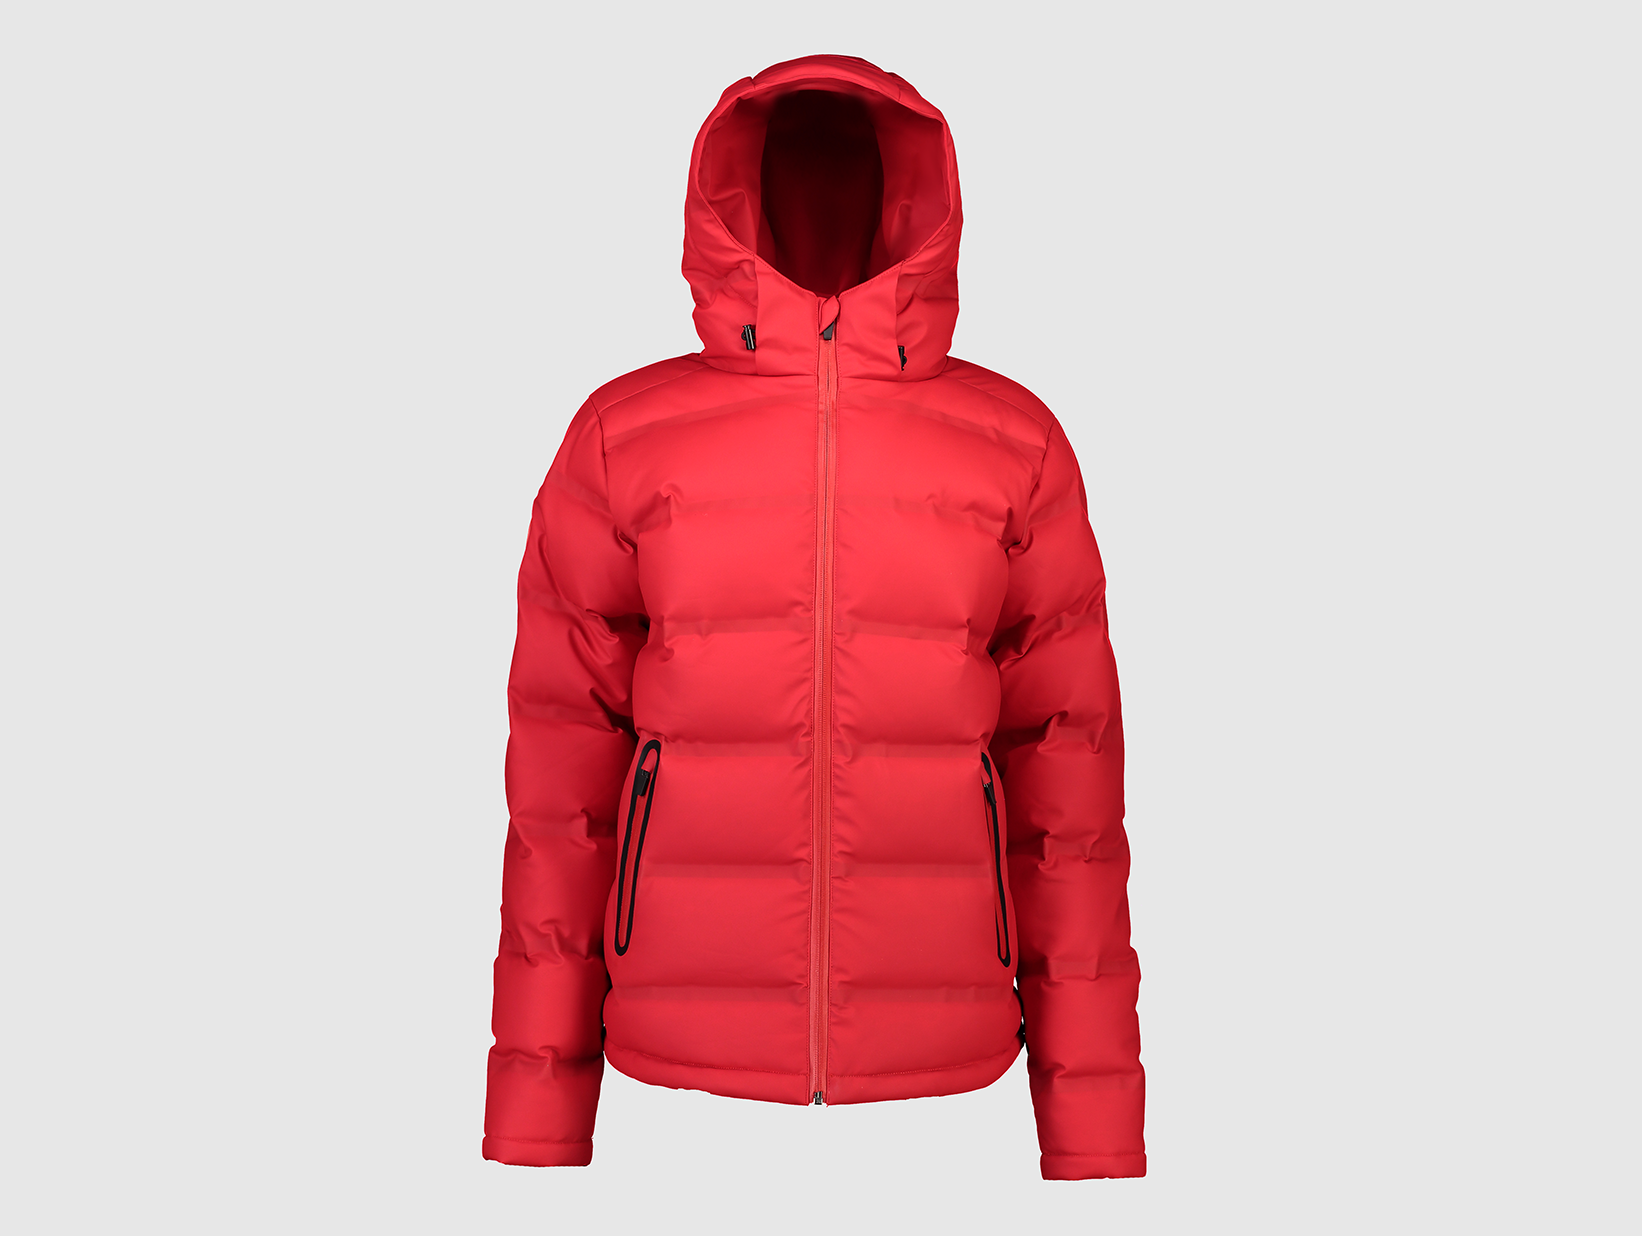 huffer-red-puffer-down-jacket